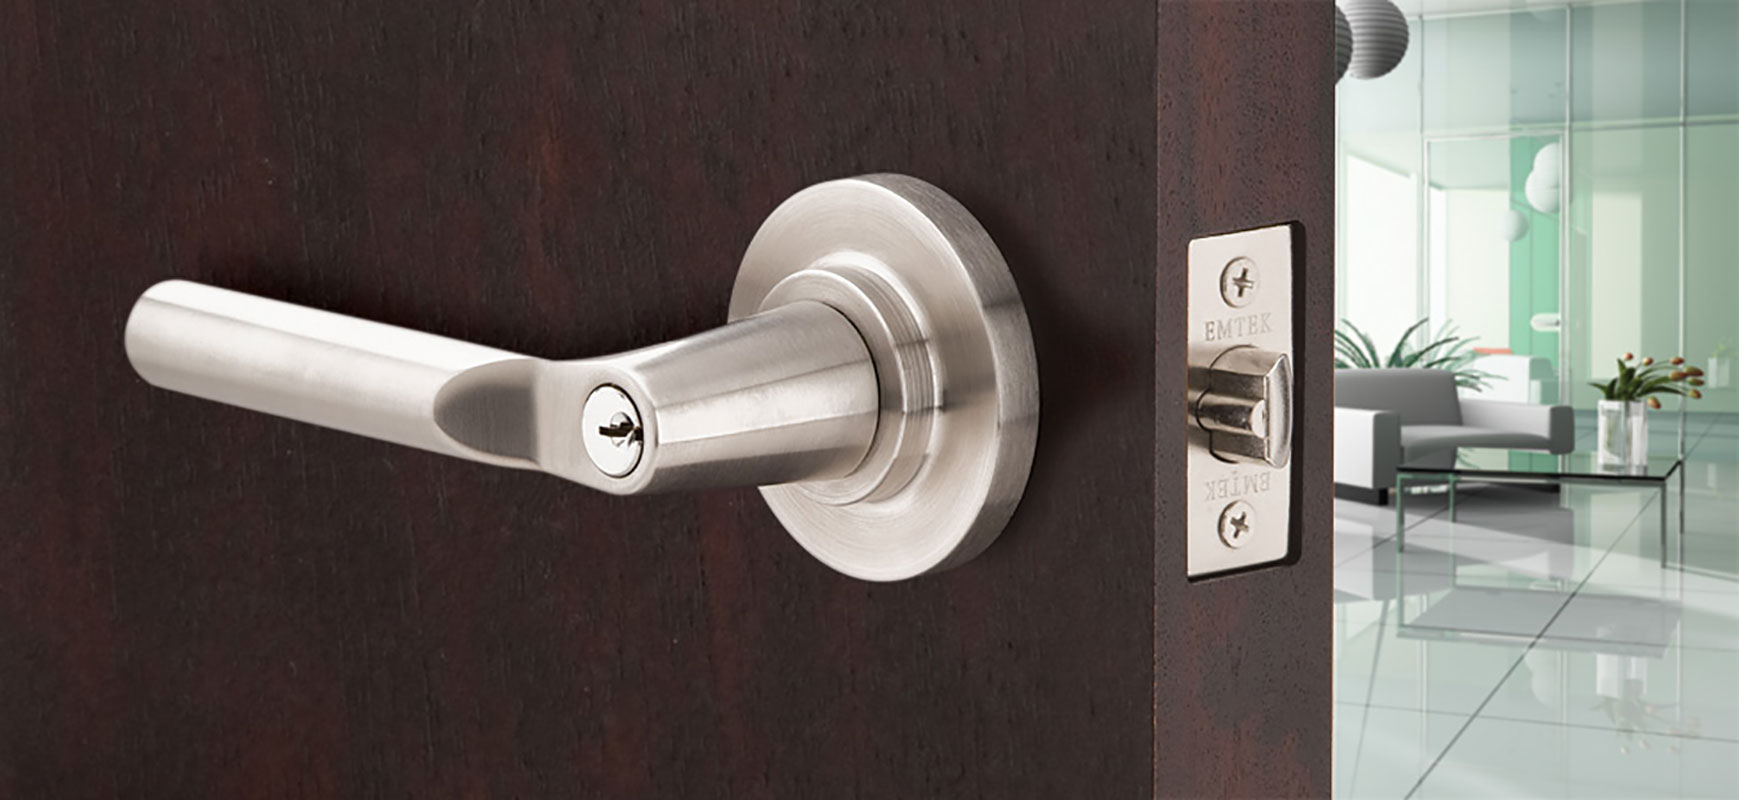 & Gallery Collection of Door Hardware Inspiration | Emtek Products Inc. Pezcame.Com